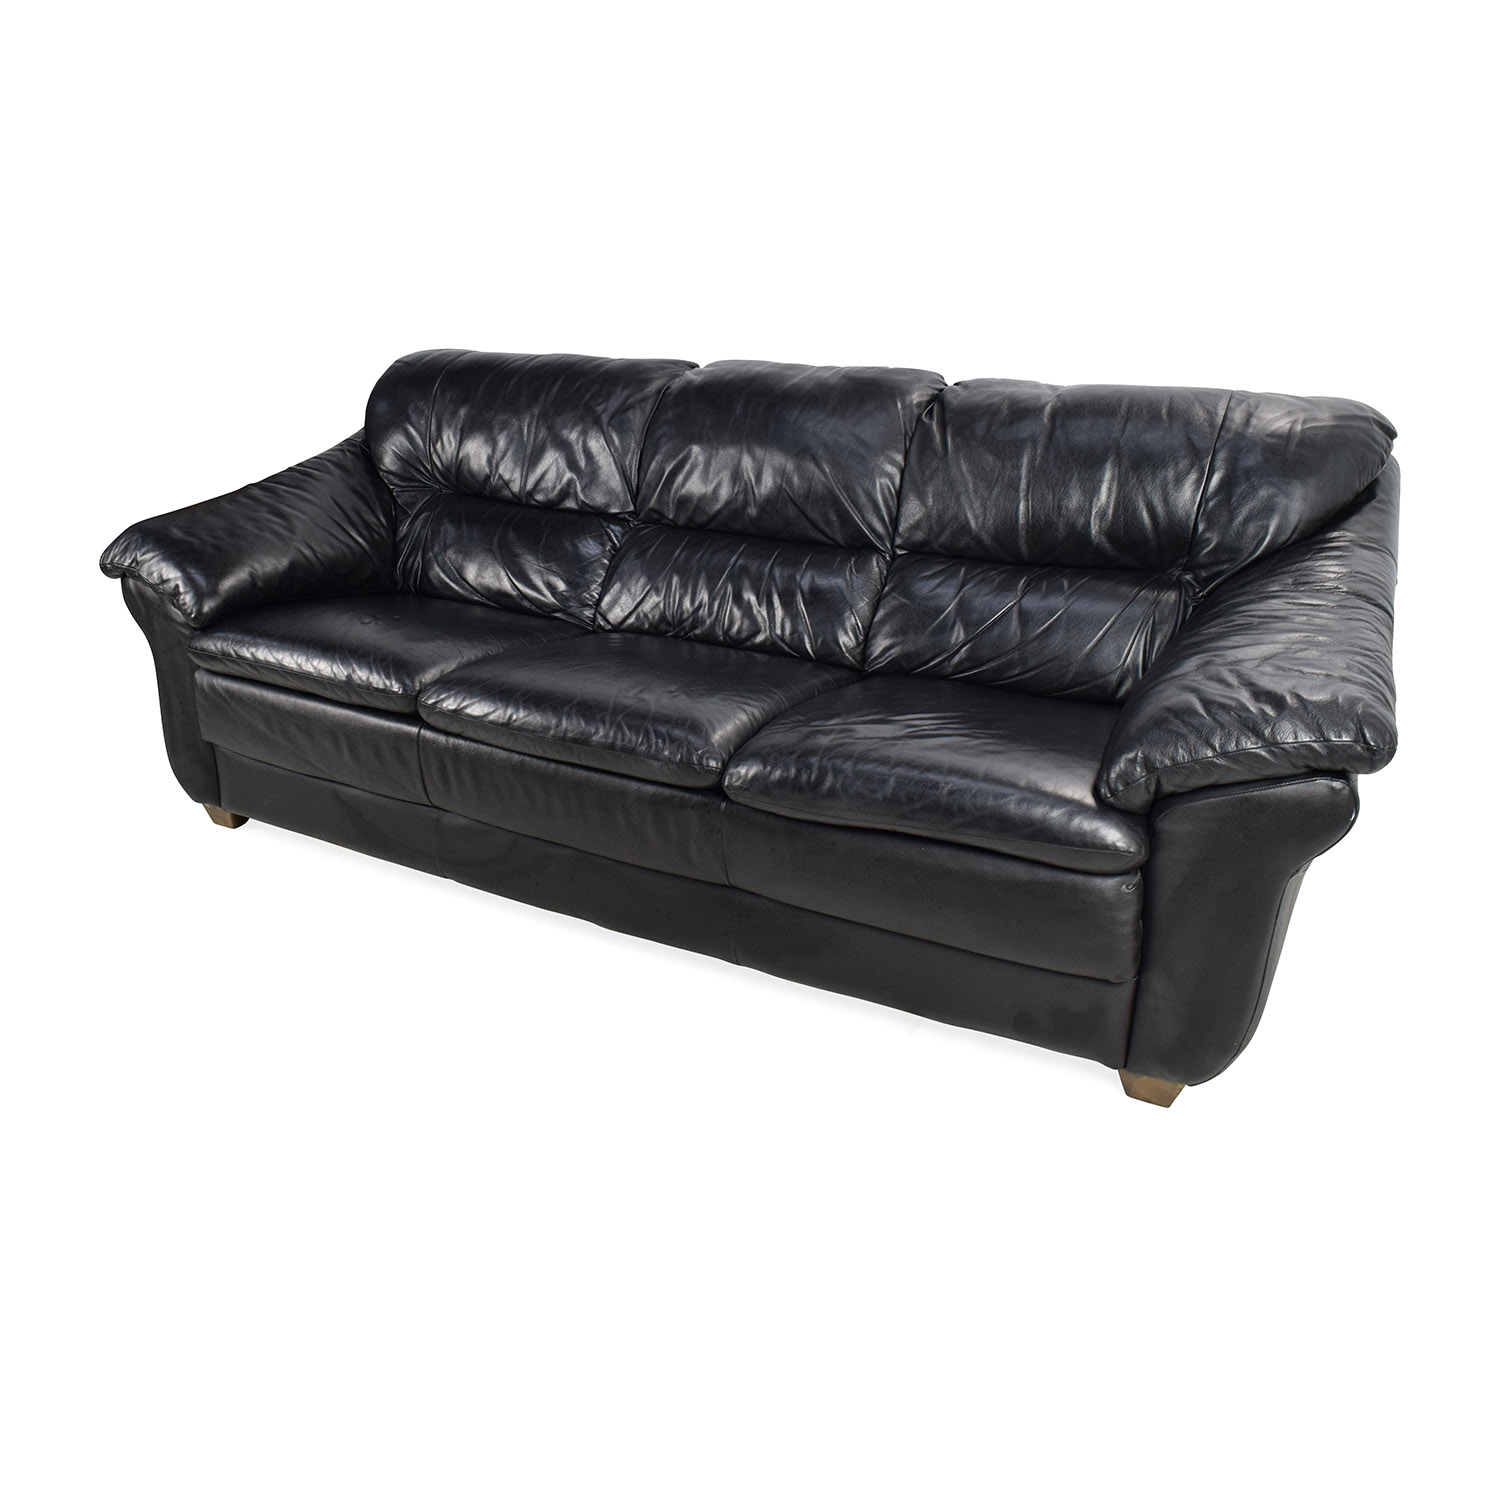 Natuzzi Black Leather Sofa Natuzzi Leather Sofas Best For Home Design Ideas Thesofa